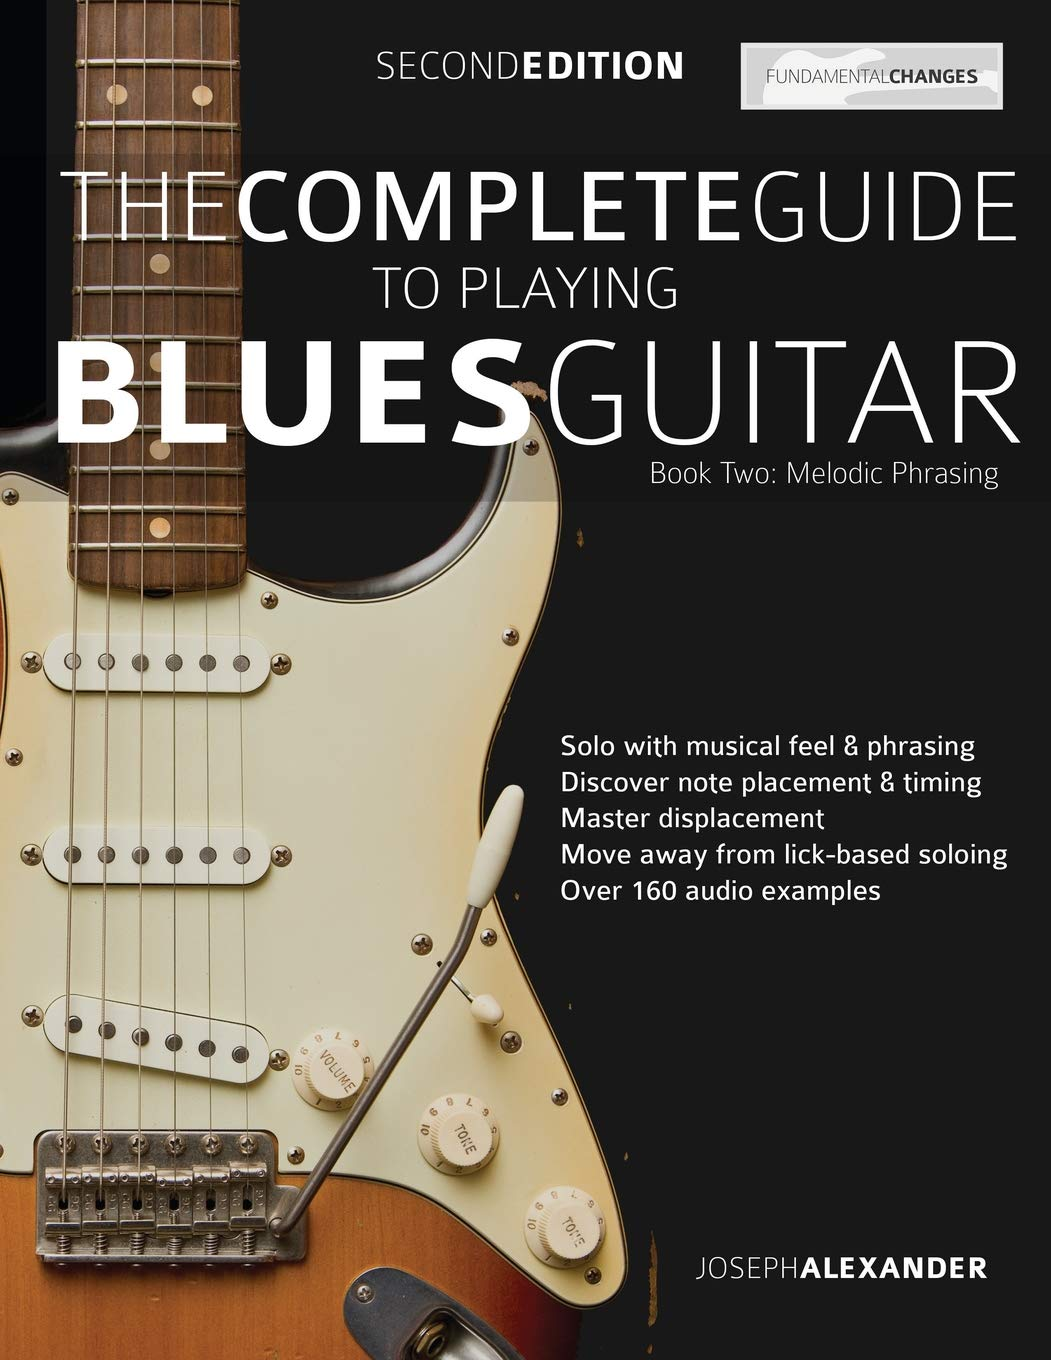 The Complete Guide To Playing Blues Guitar Book Two   Melodic Phrasing  Lead Guitar Melodic Phrasing  Play Blues Guitar Band 2